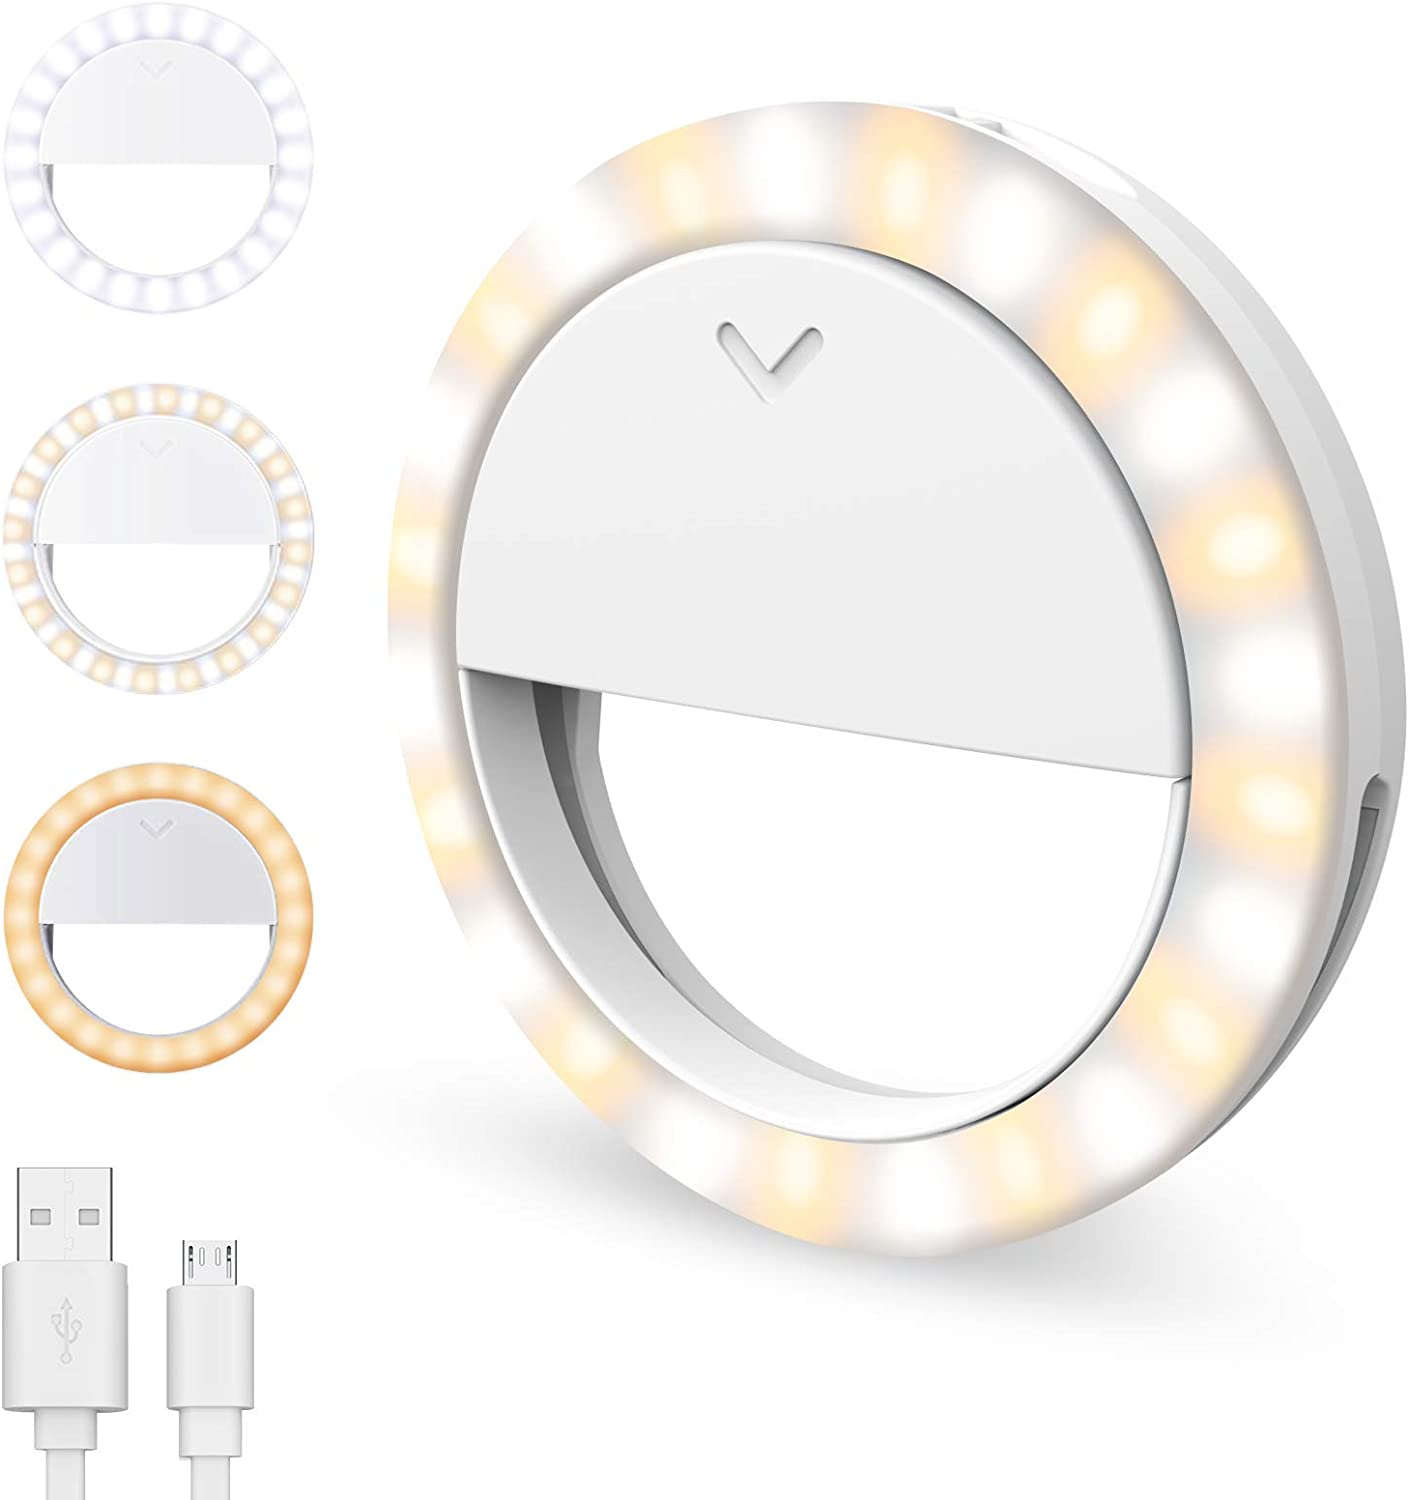 Laptop 3 Lighting Modes Long Battery Life //1m USB Cable Upgraded Adjustable Brightness 600mAh Rechargeable Circle Light for Smartphone Selfie Ring Light 40 LED Clip-on Photography Video Light